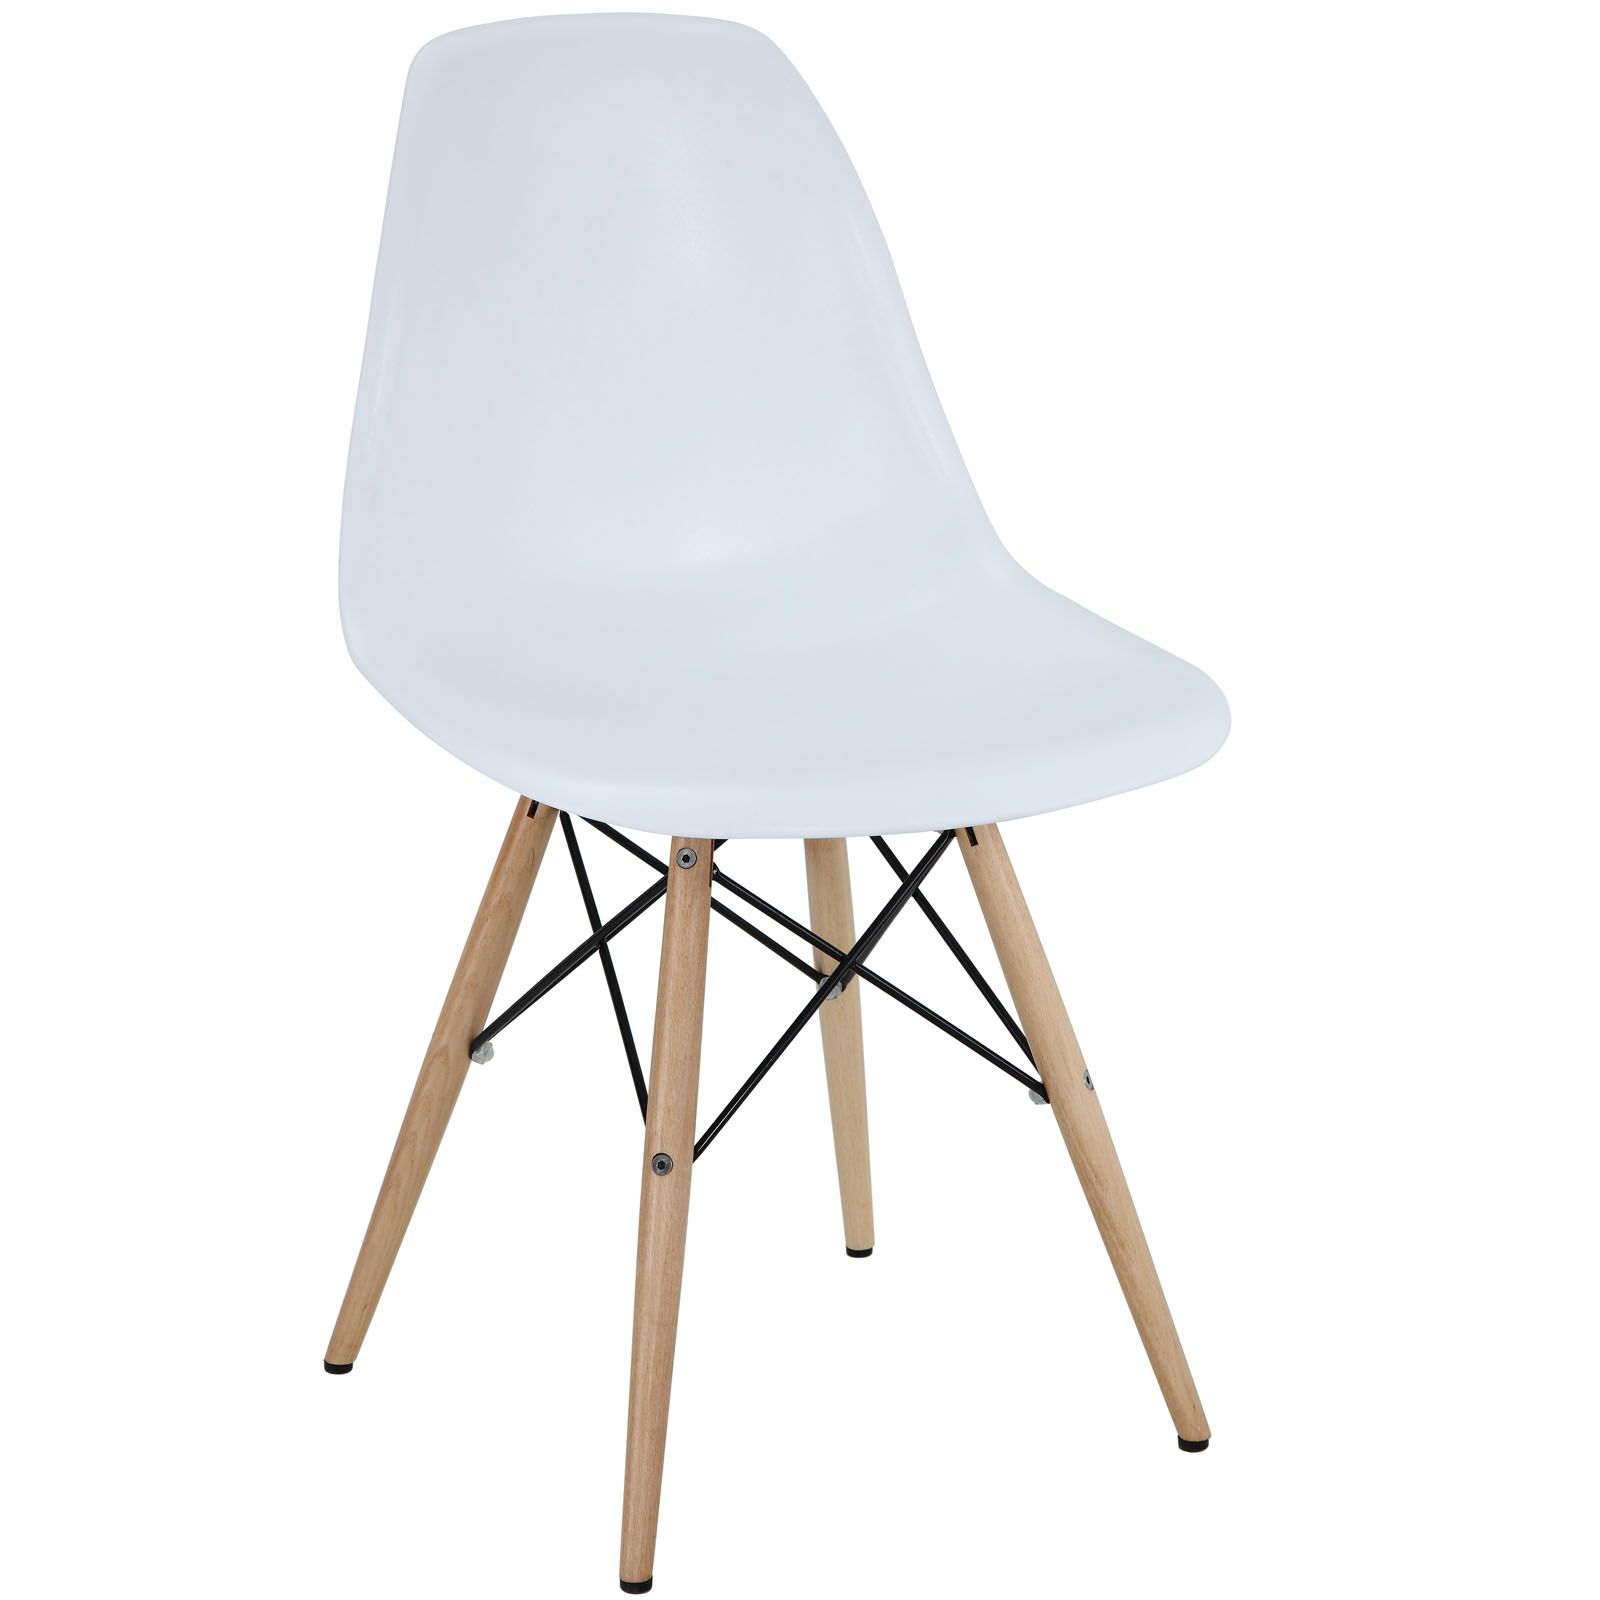 100 eames knock off chairs reach your sweet home the 25 best eames chairs ideas on - Modern furniture knock offs ...